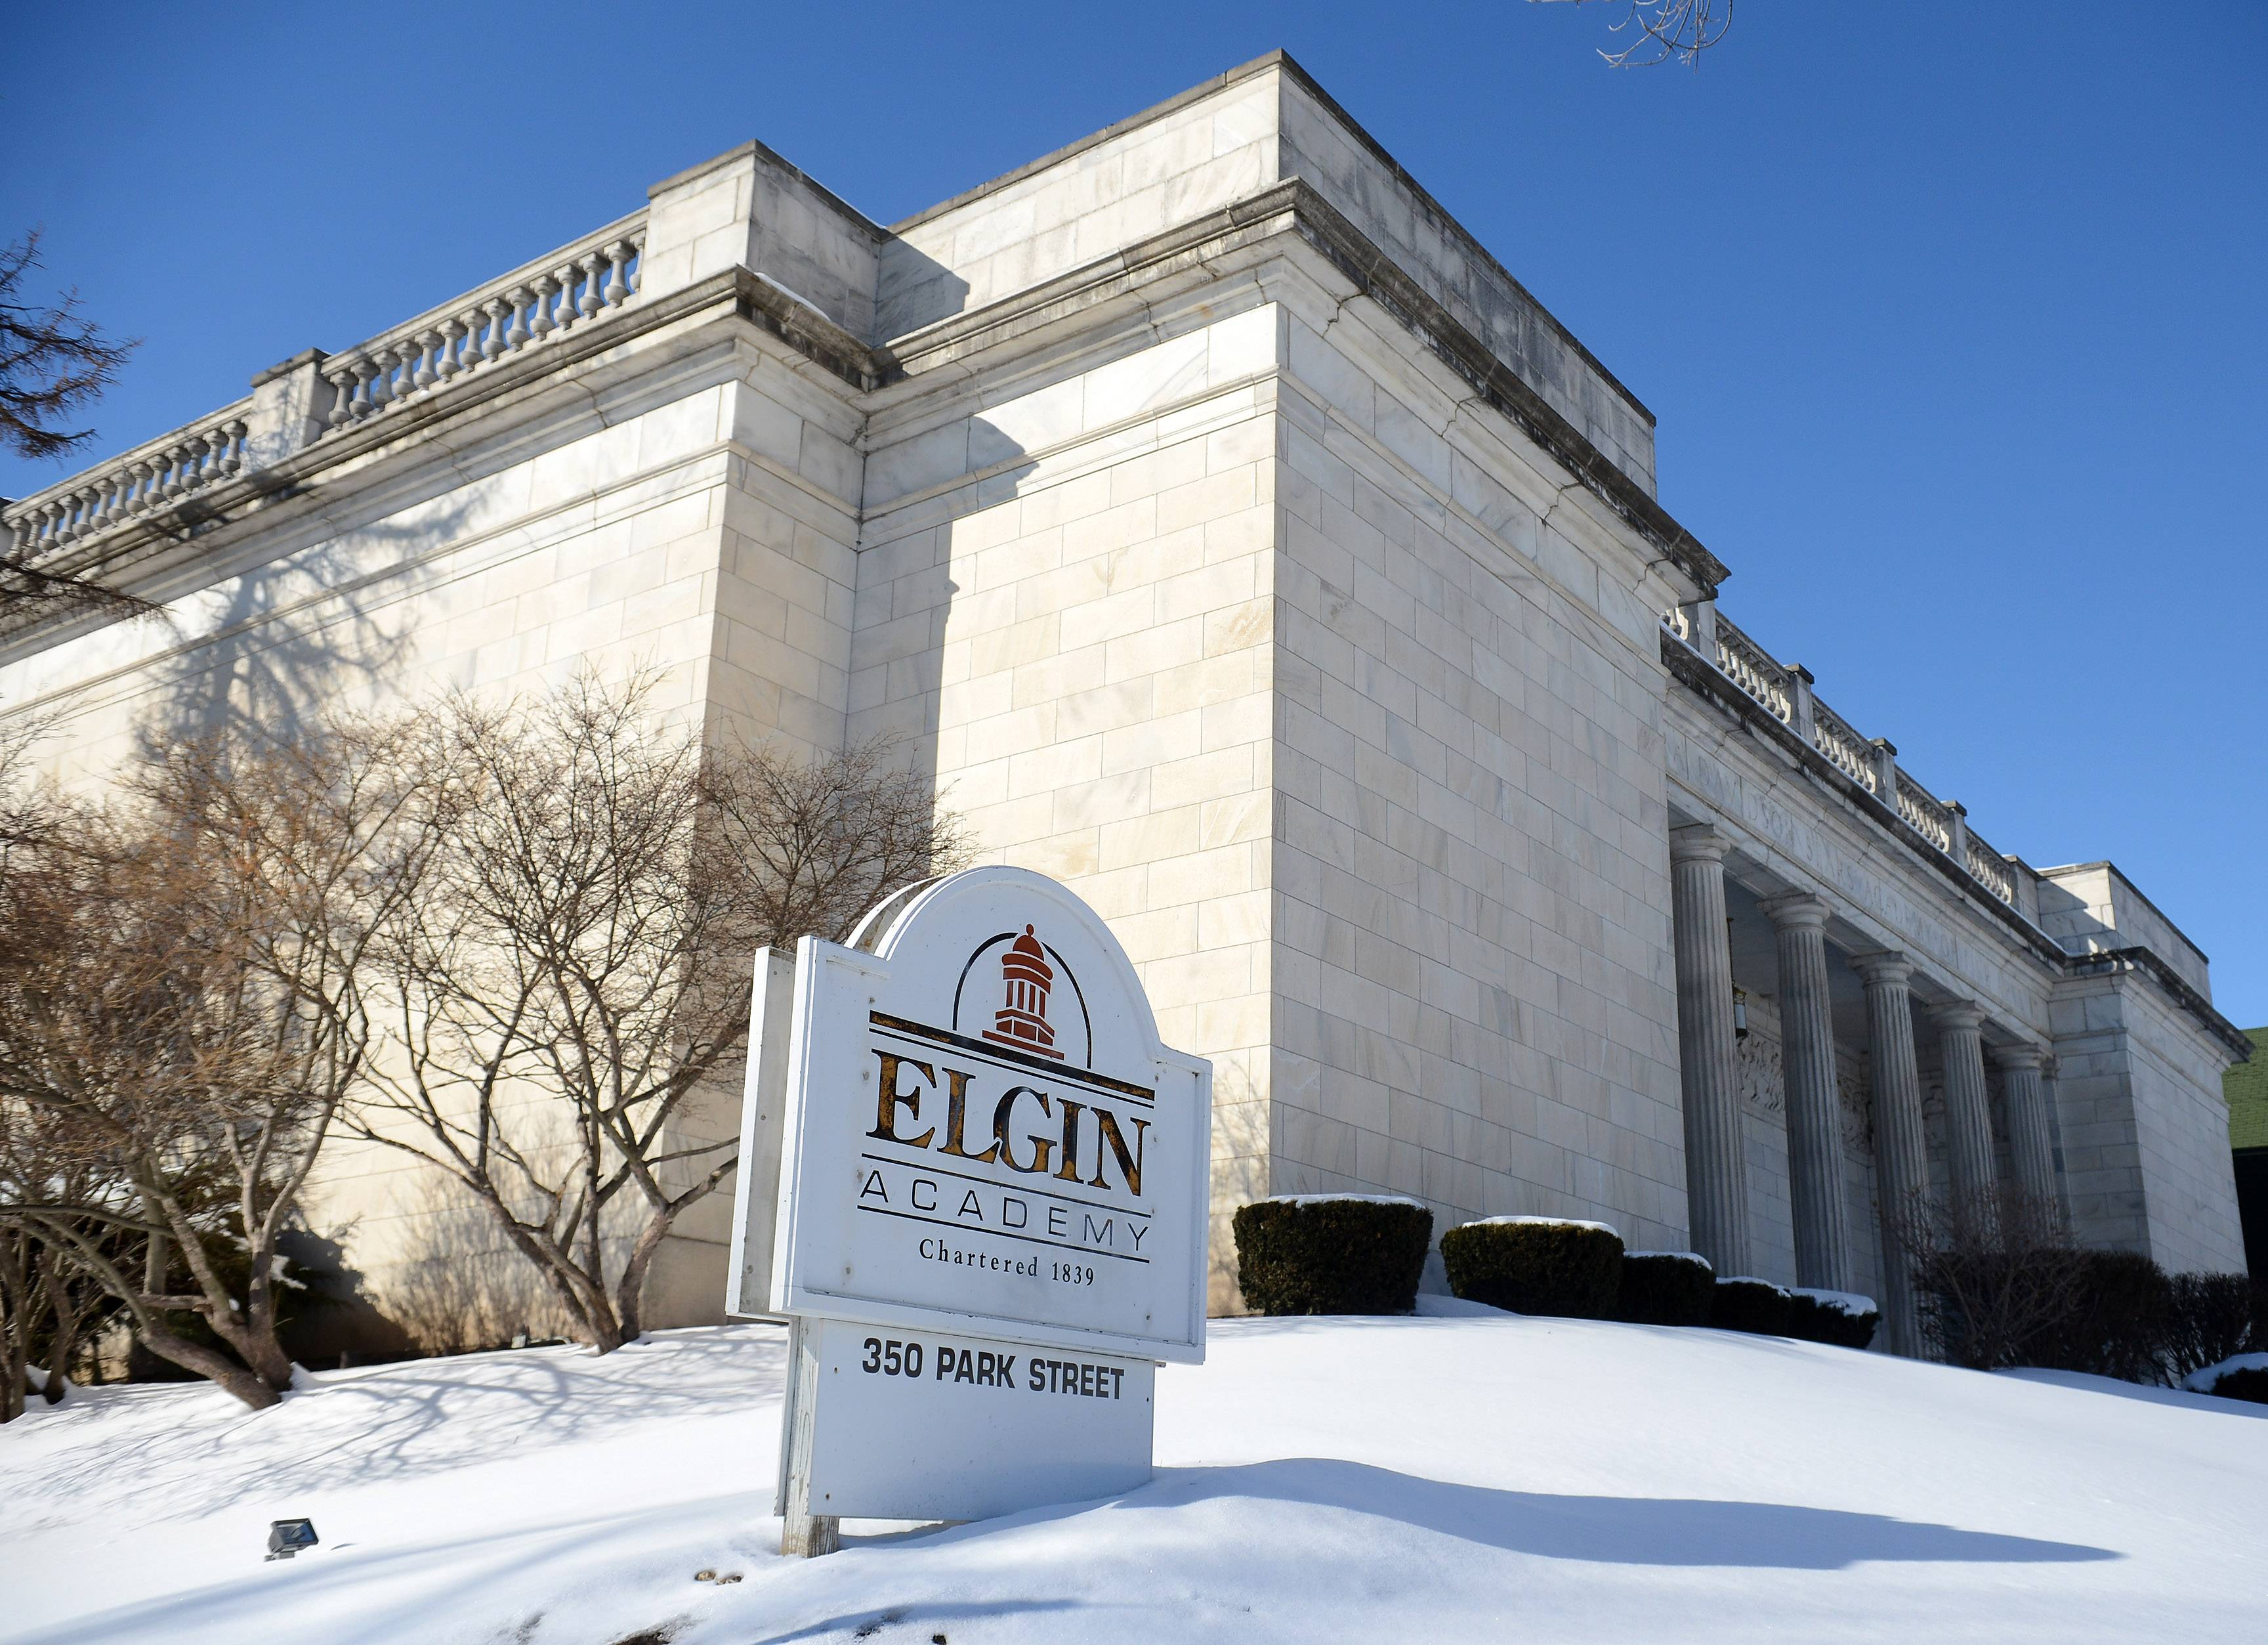 Elgin Academy in Elgin marks the 175th anniversary of its charter this month with a day of service Friday and a day of festivities Saturday. It is the oldest coeducational college preparatory institution in the Northwest suburbs.